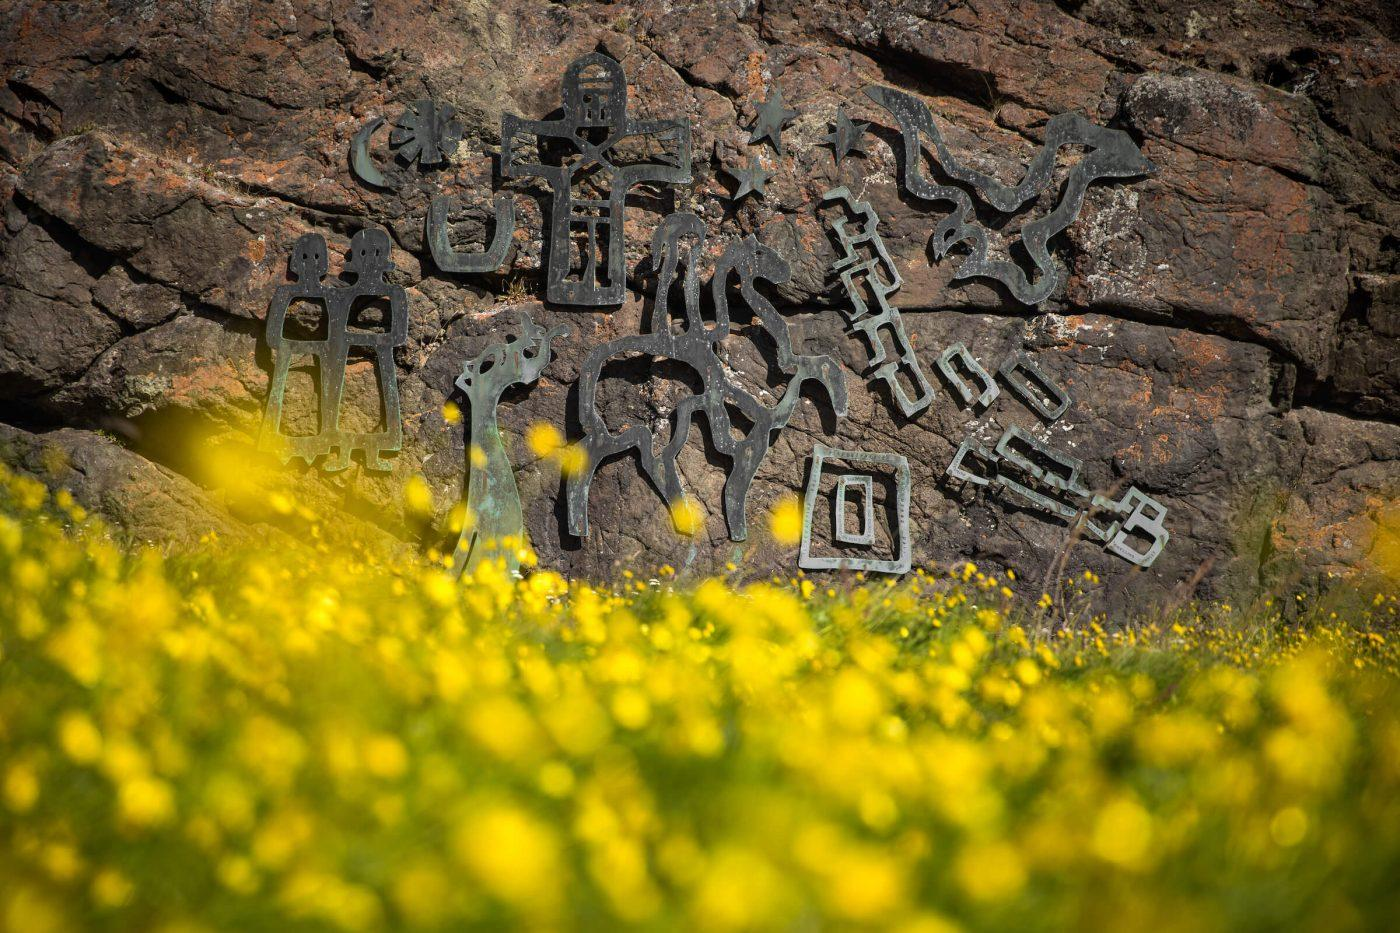 Modern day cast iron norse runes on a rock wall in Qassiarsuk. By Mads Pihl